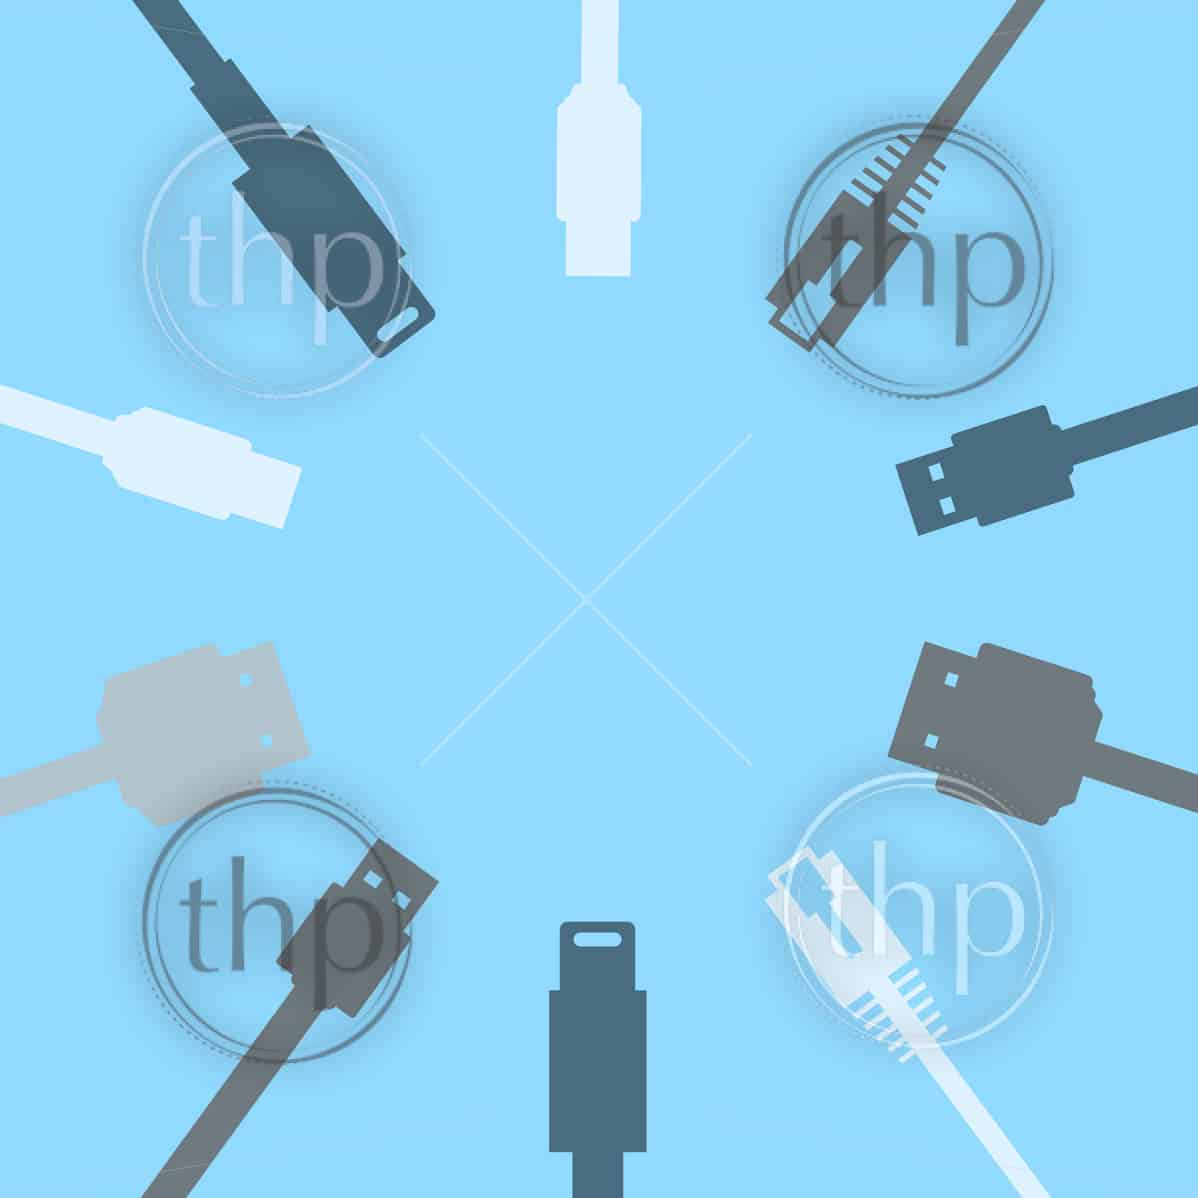 Circle of ten cable connections including HDMI, USB, ethernet in flat design vector